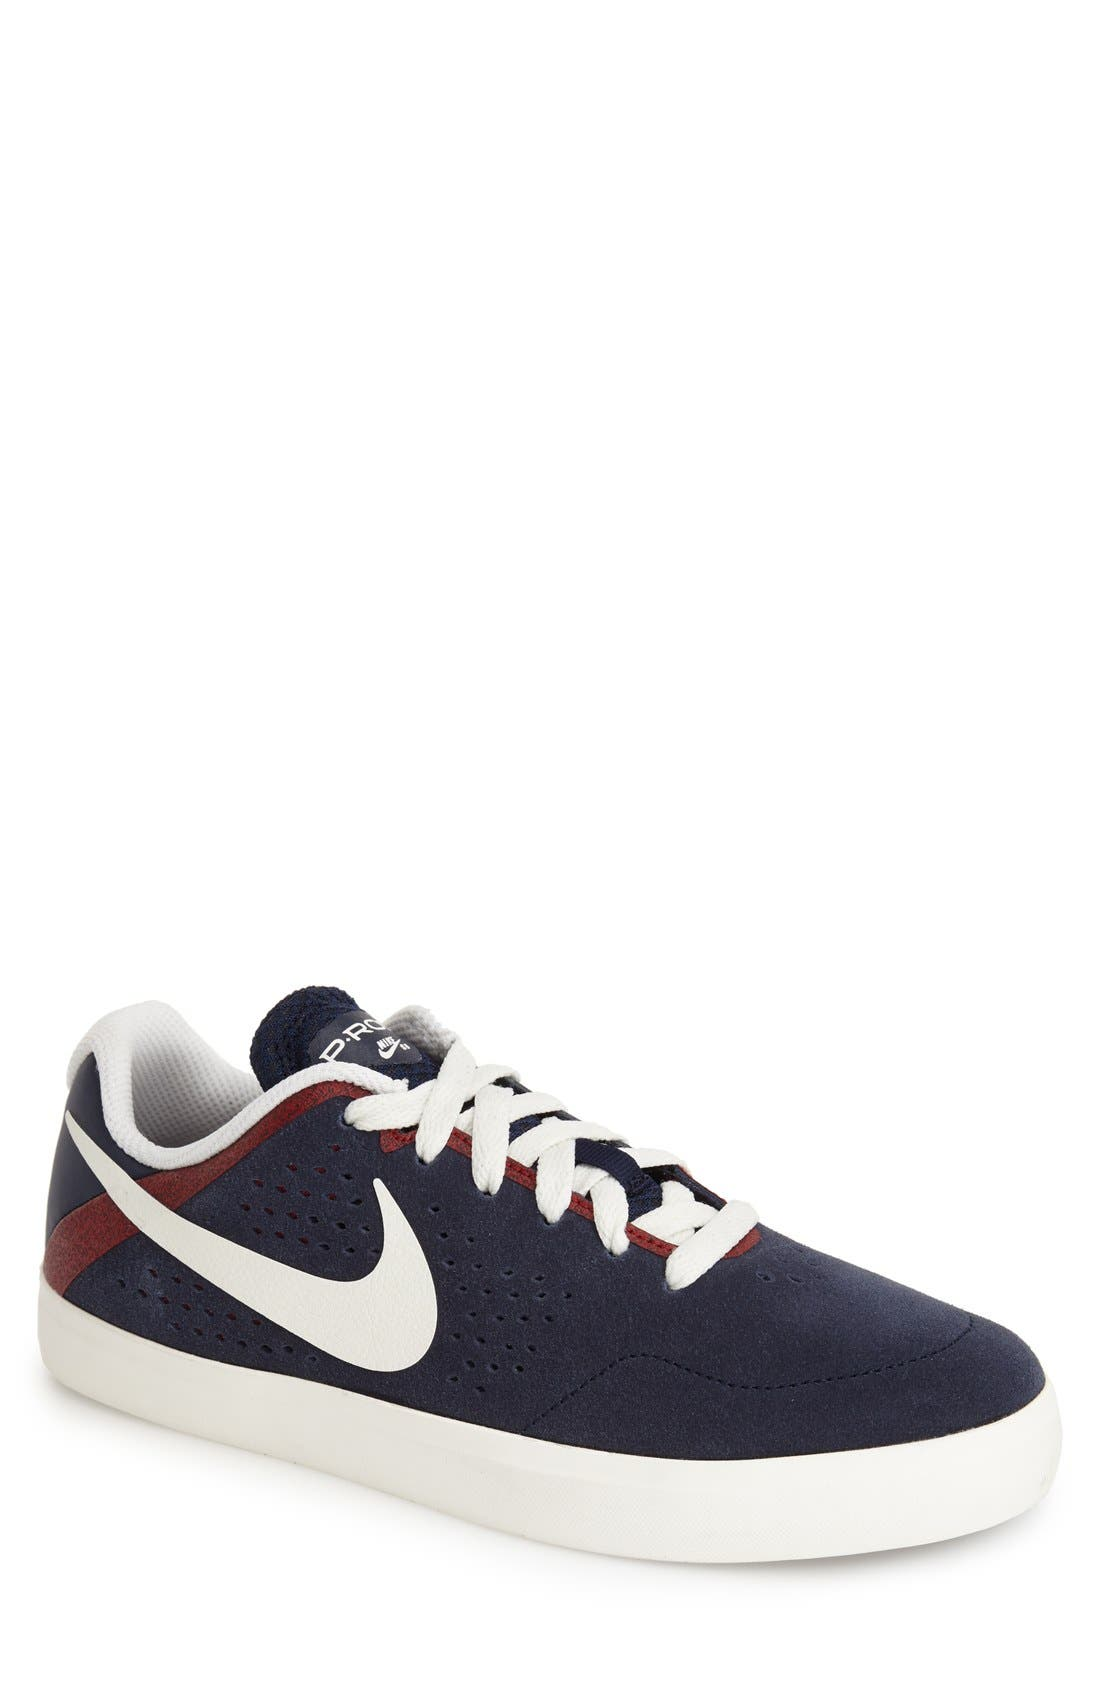 Main Image - Nike 'Paul Rodriguez CTD LR SB' Skate Shoe (Men)